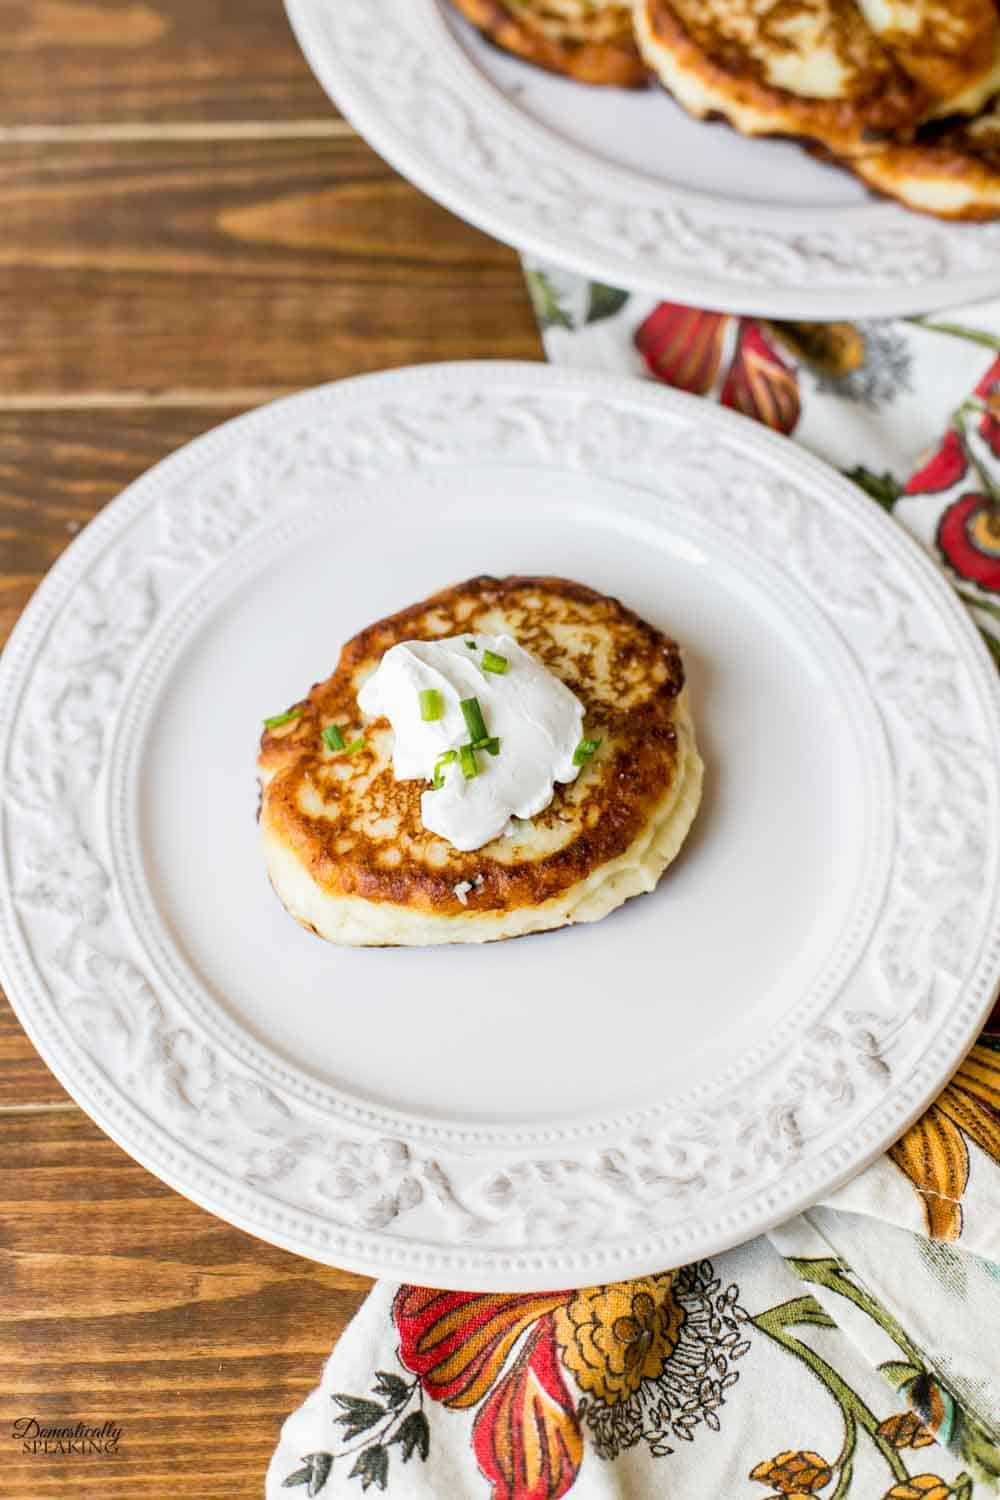 Potato Cakes with leftover mashed potatoes